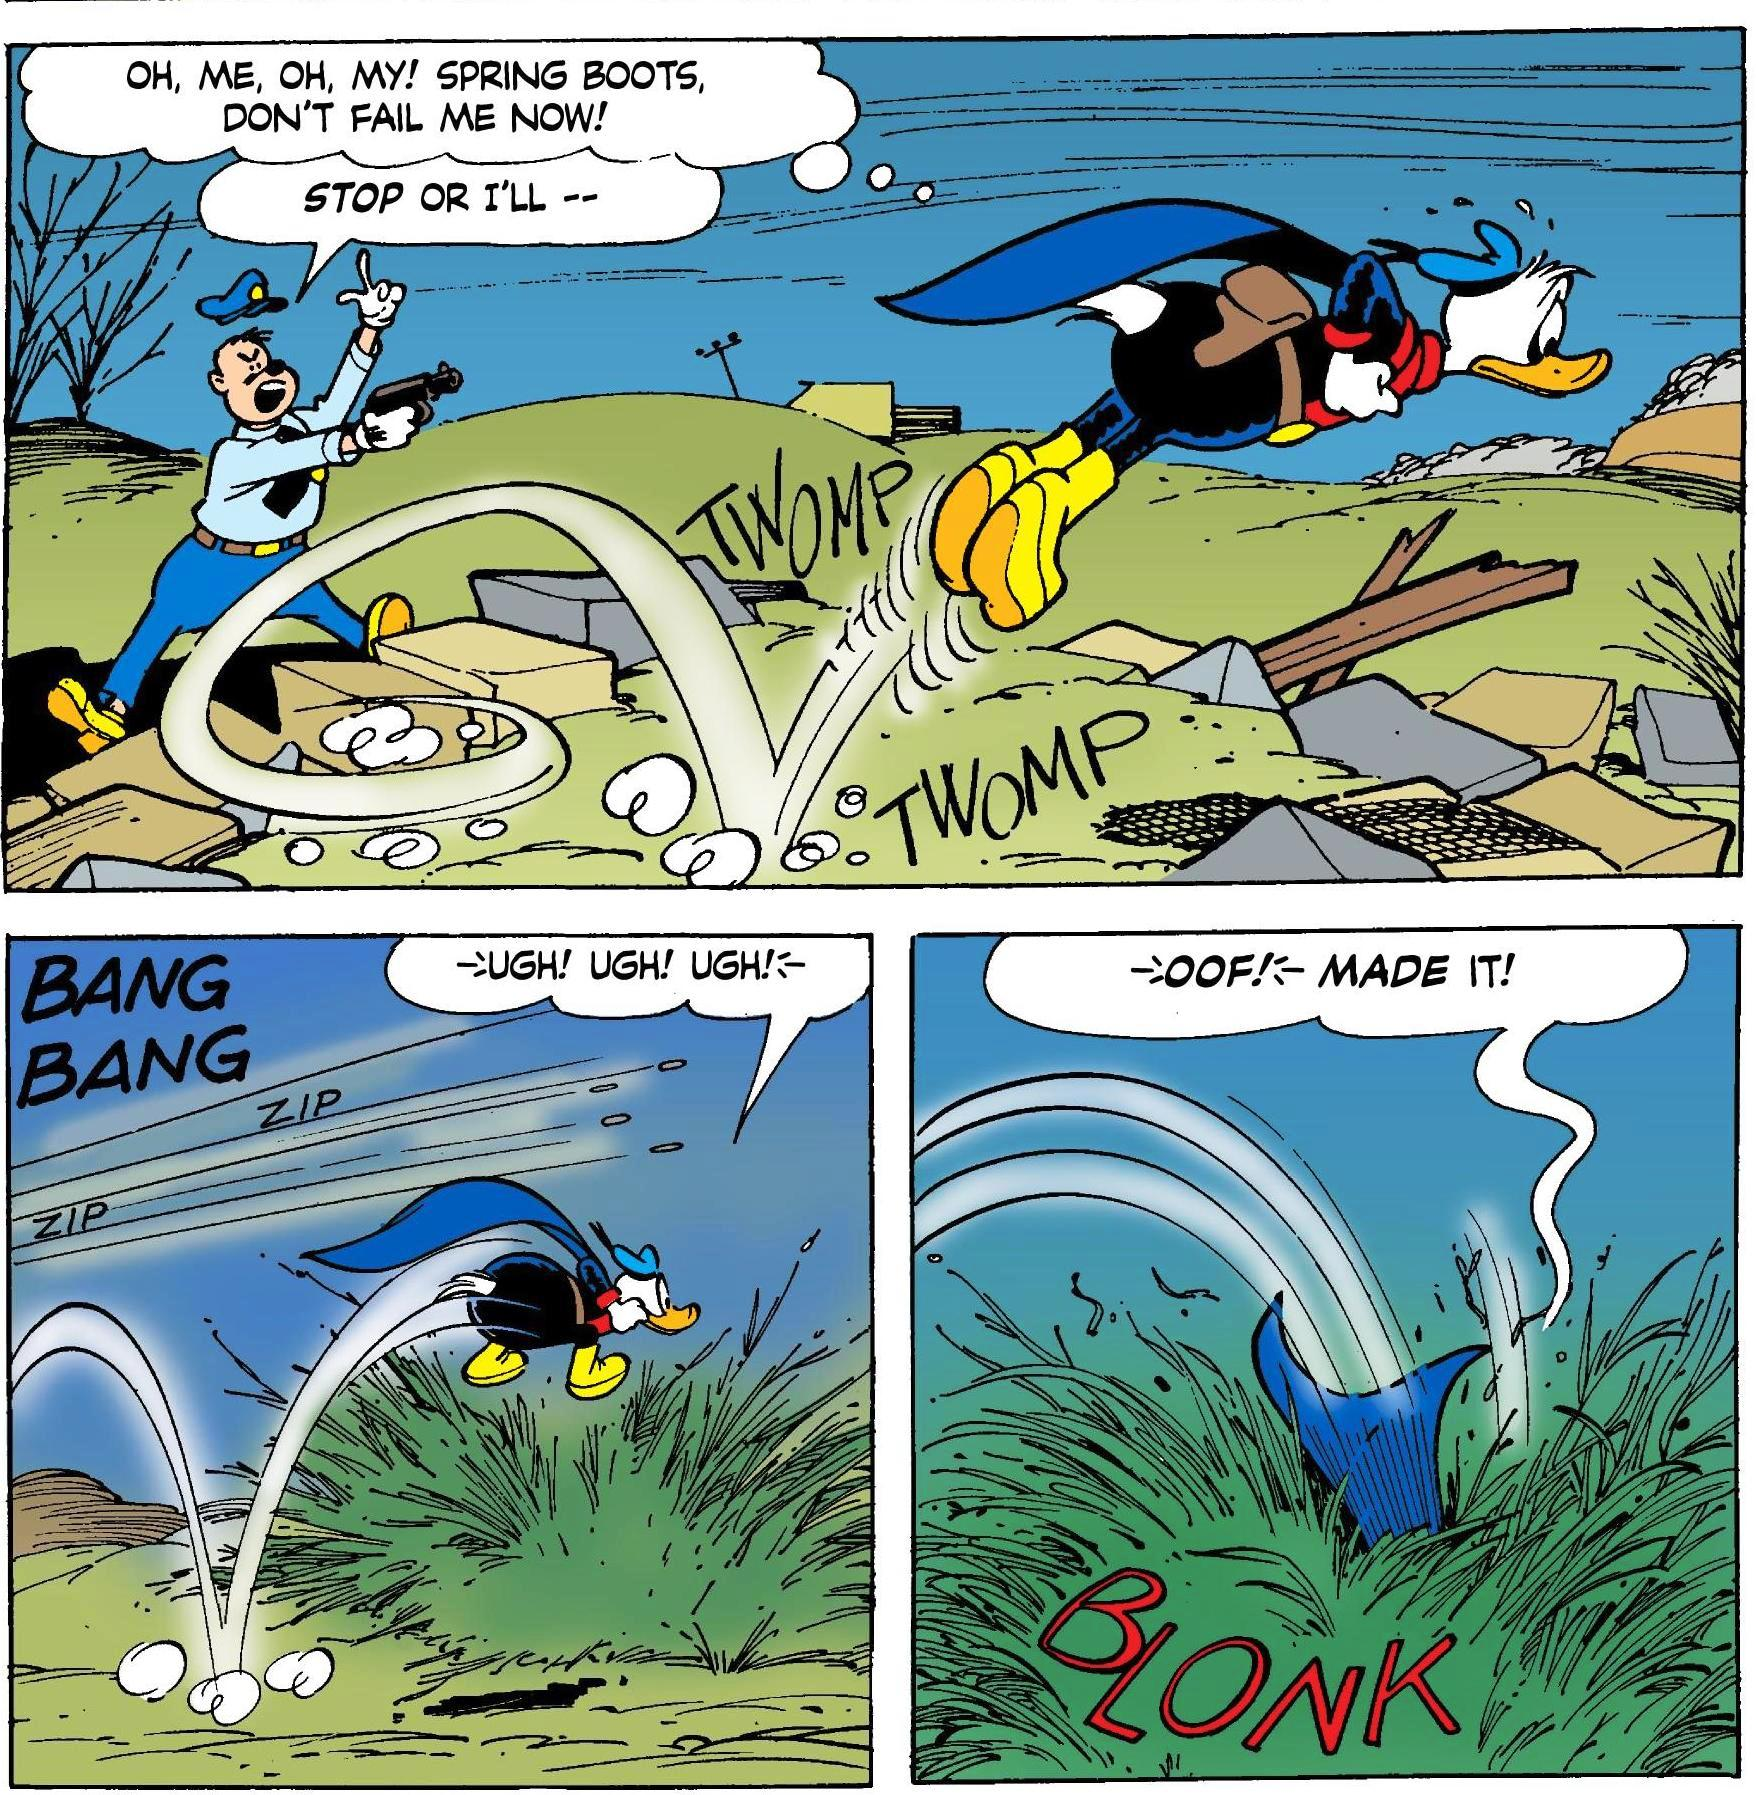 Disney Masters 8 Donald Duck Duck Avenger Strikes Again Romano Scarpa Carl Barks Review